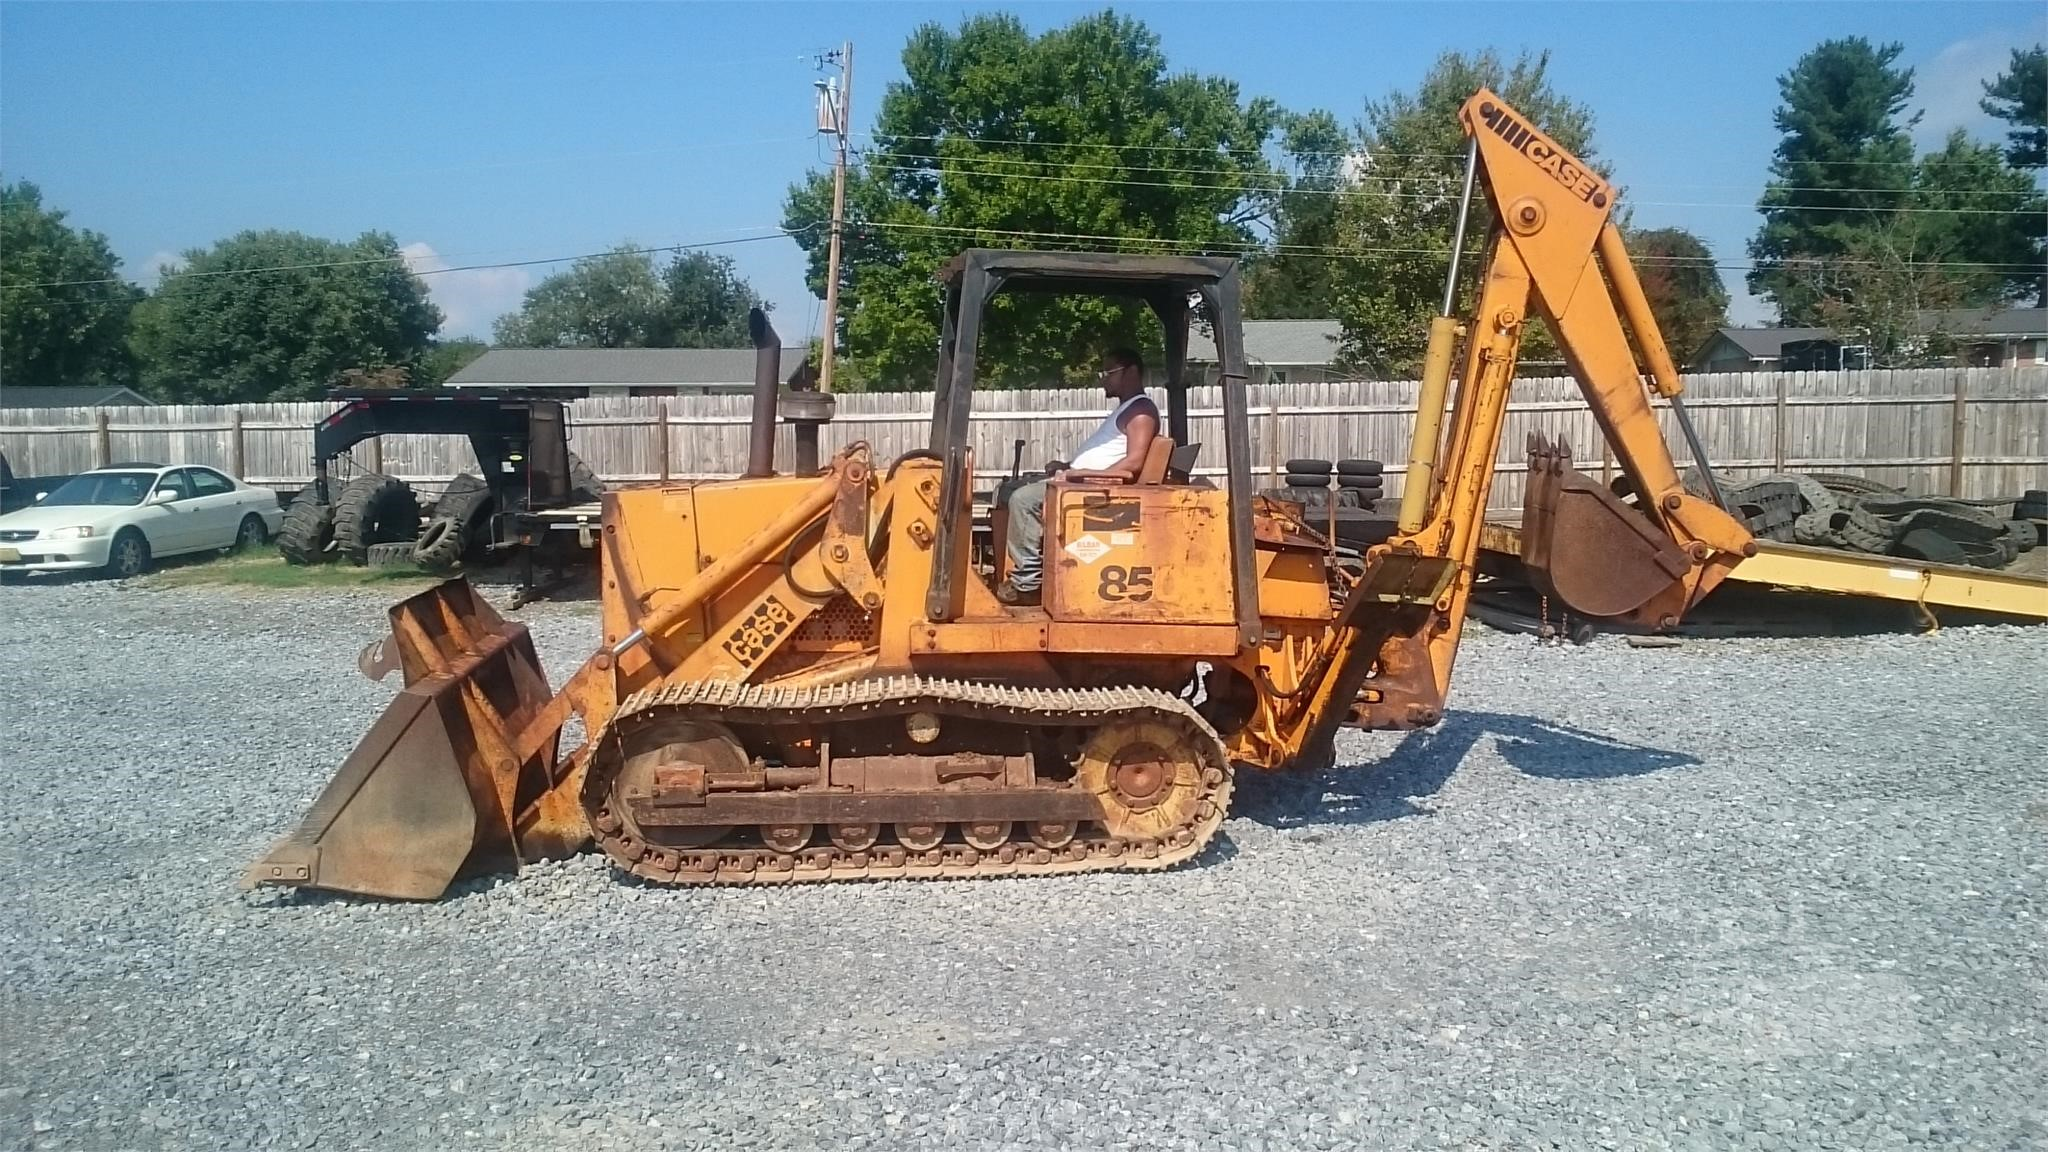 1979 CASE 850B CRAWLER LOADER GP BUCKET WITH TEETH AND FACTOR REAR BACKHOE ATTACHMENT 24 REAR BU